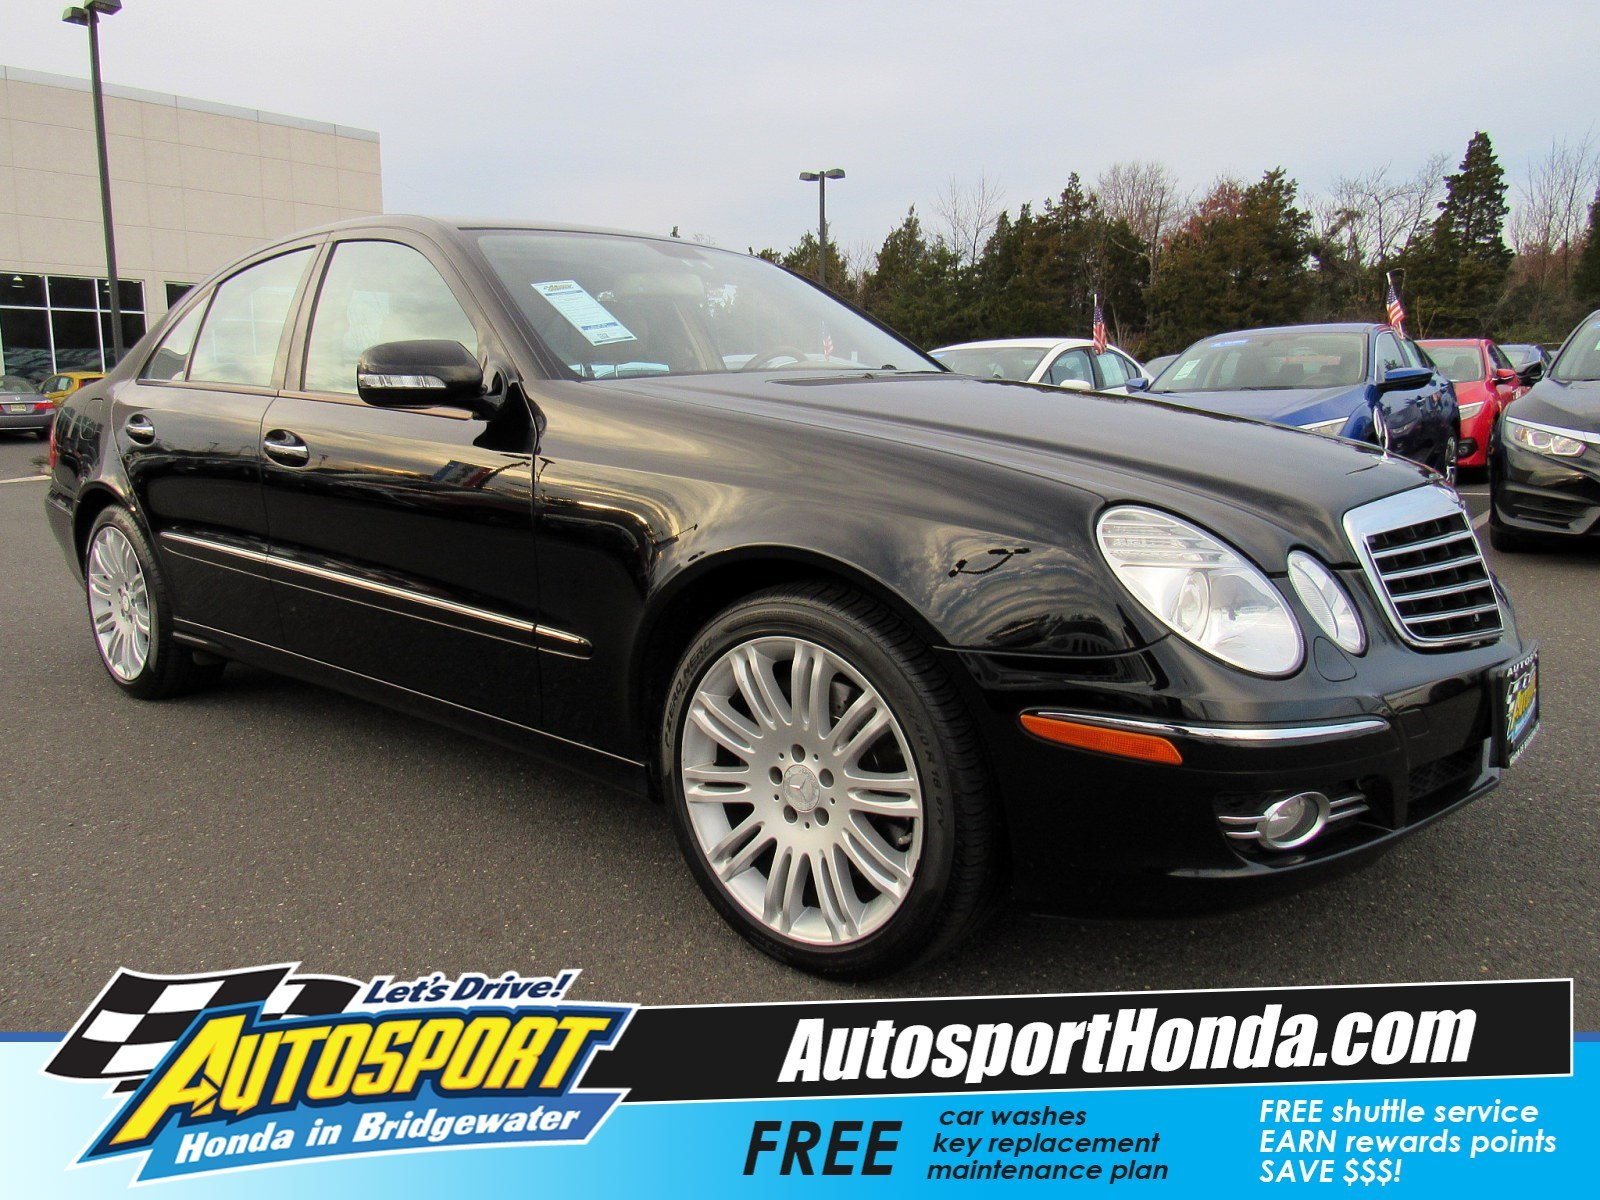 Pre Owned 2008 Mercedes Benz E Class Luxury 3 5L 4MATIC 4dr Car in